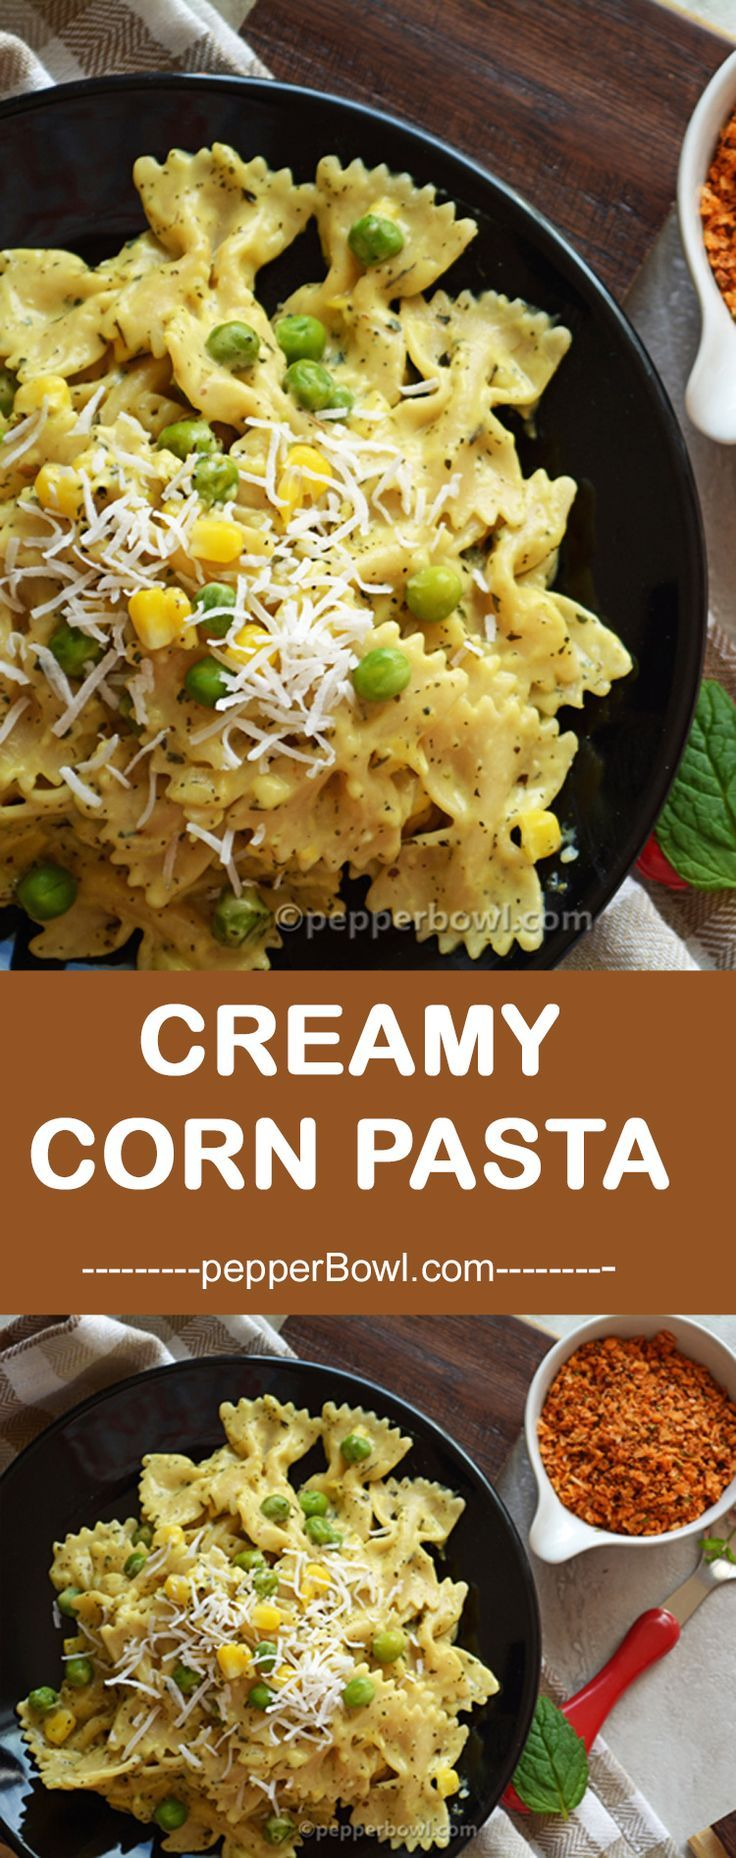 Corn Pasta Recipe easy recipe that can be made in less than 30 minutes. Planning to make a vegetarian Pasta recipe tonight | http://pepperbowl.com via /pepperbowl/